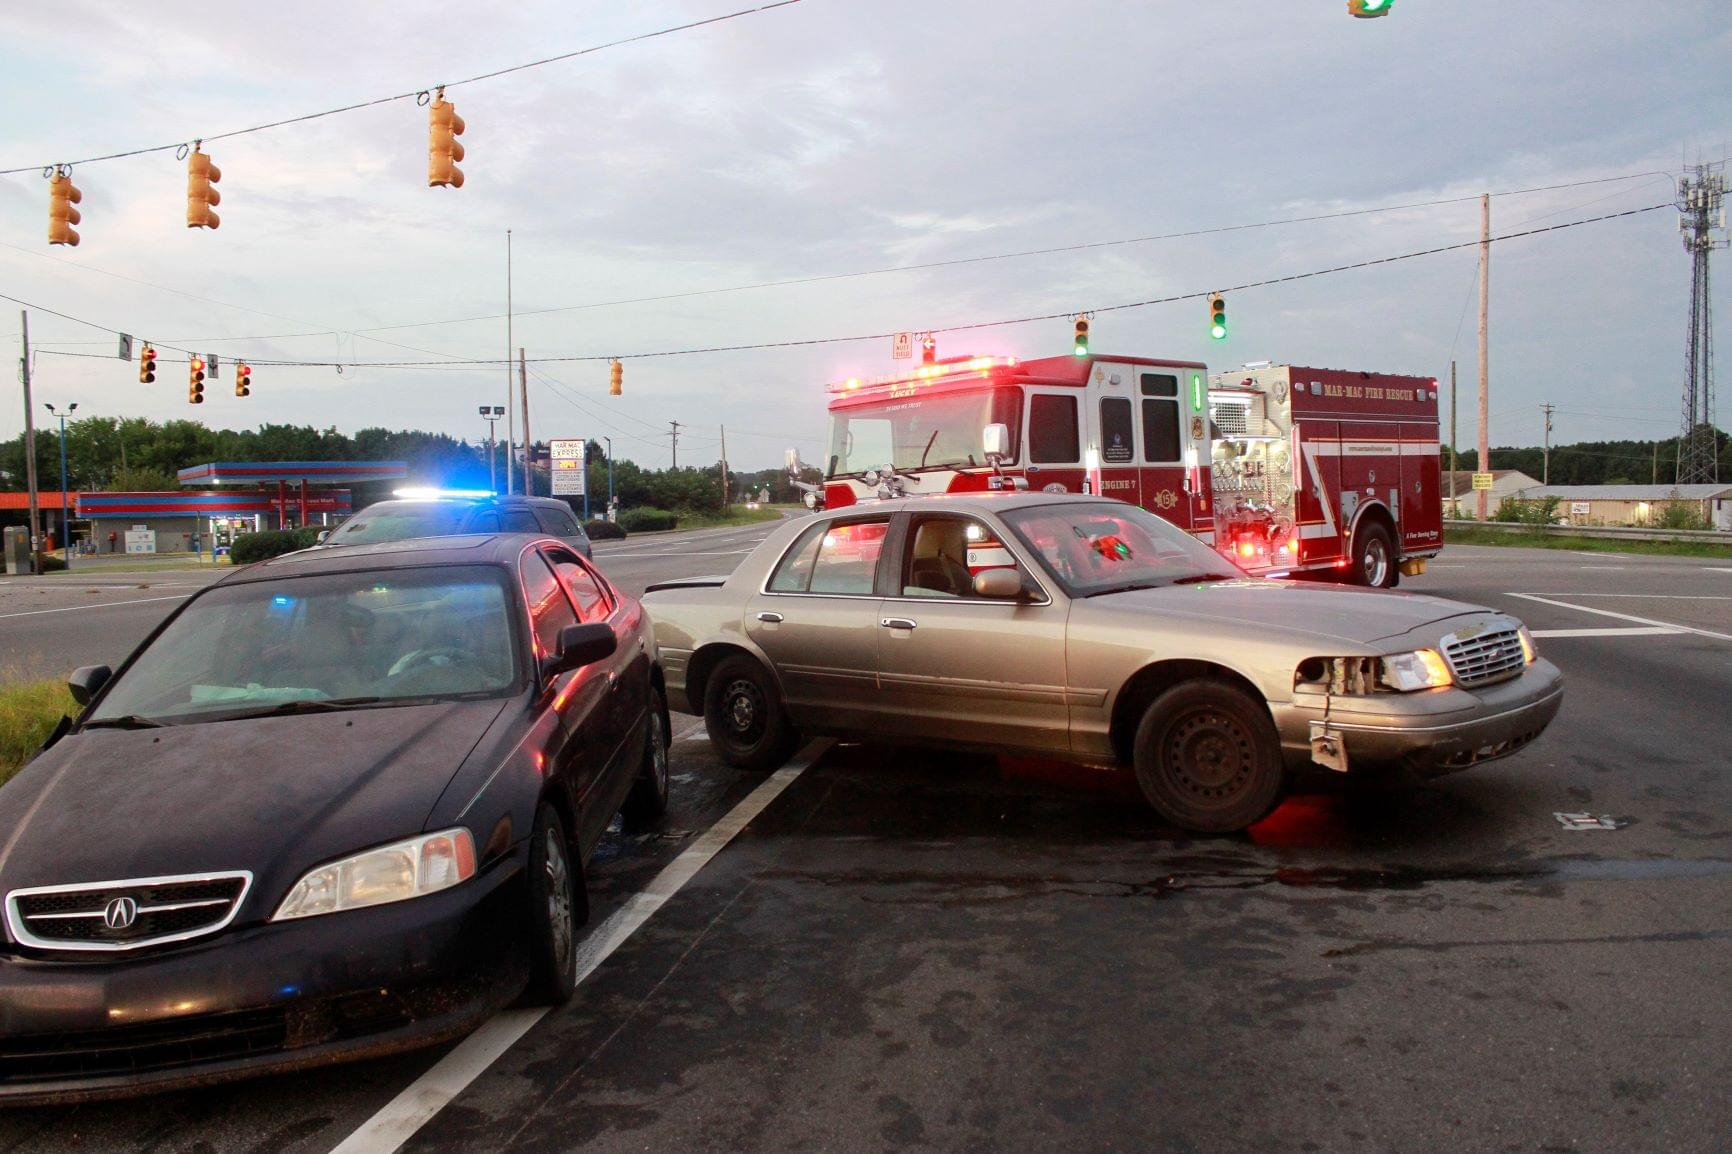 Two Vehicle Accident Call For Assist From Sheriff Deputies